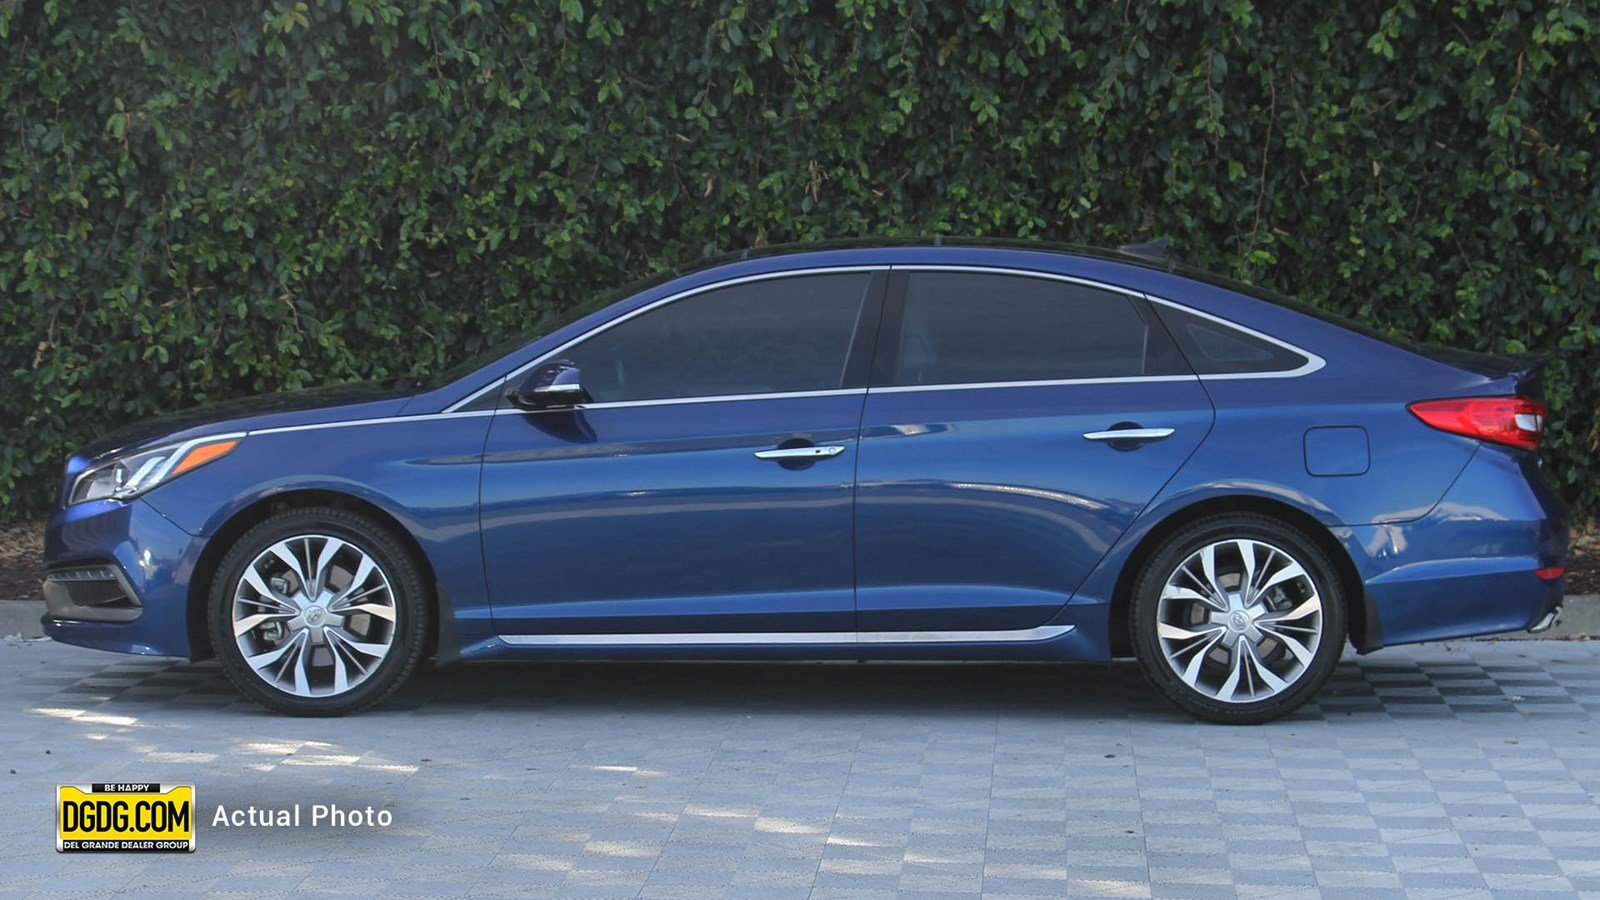 Certified Pre-Owned 2015 Hyundai Sonata Limited 2.0T